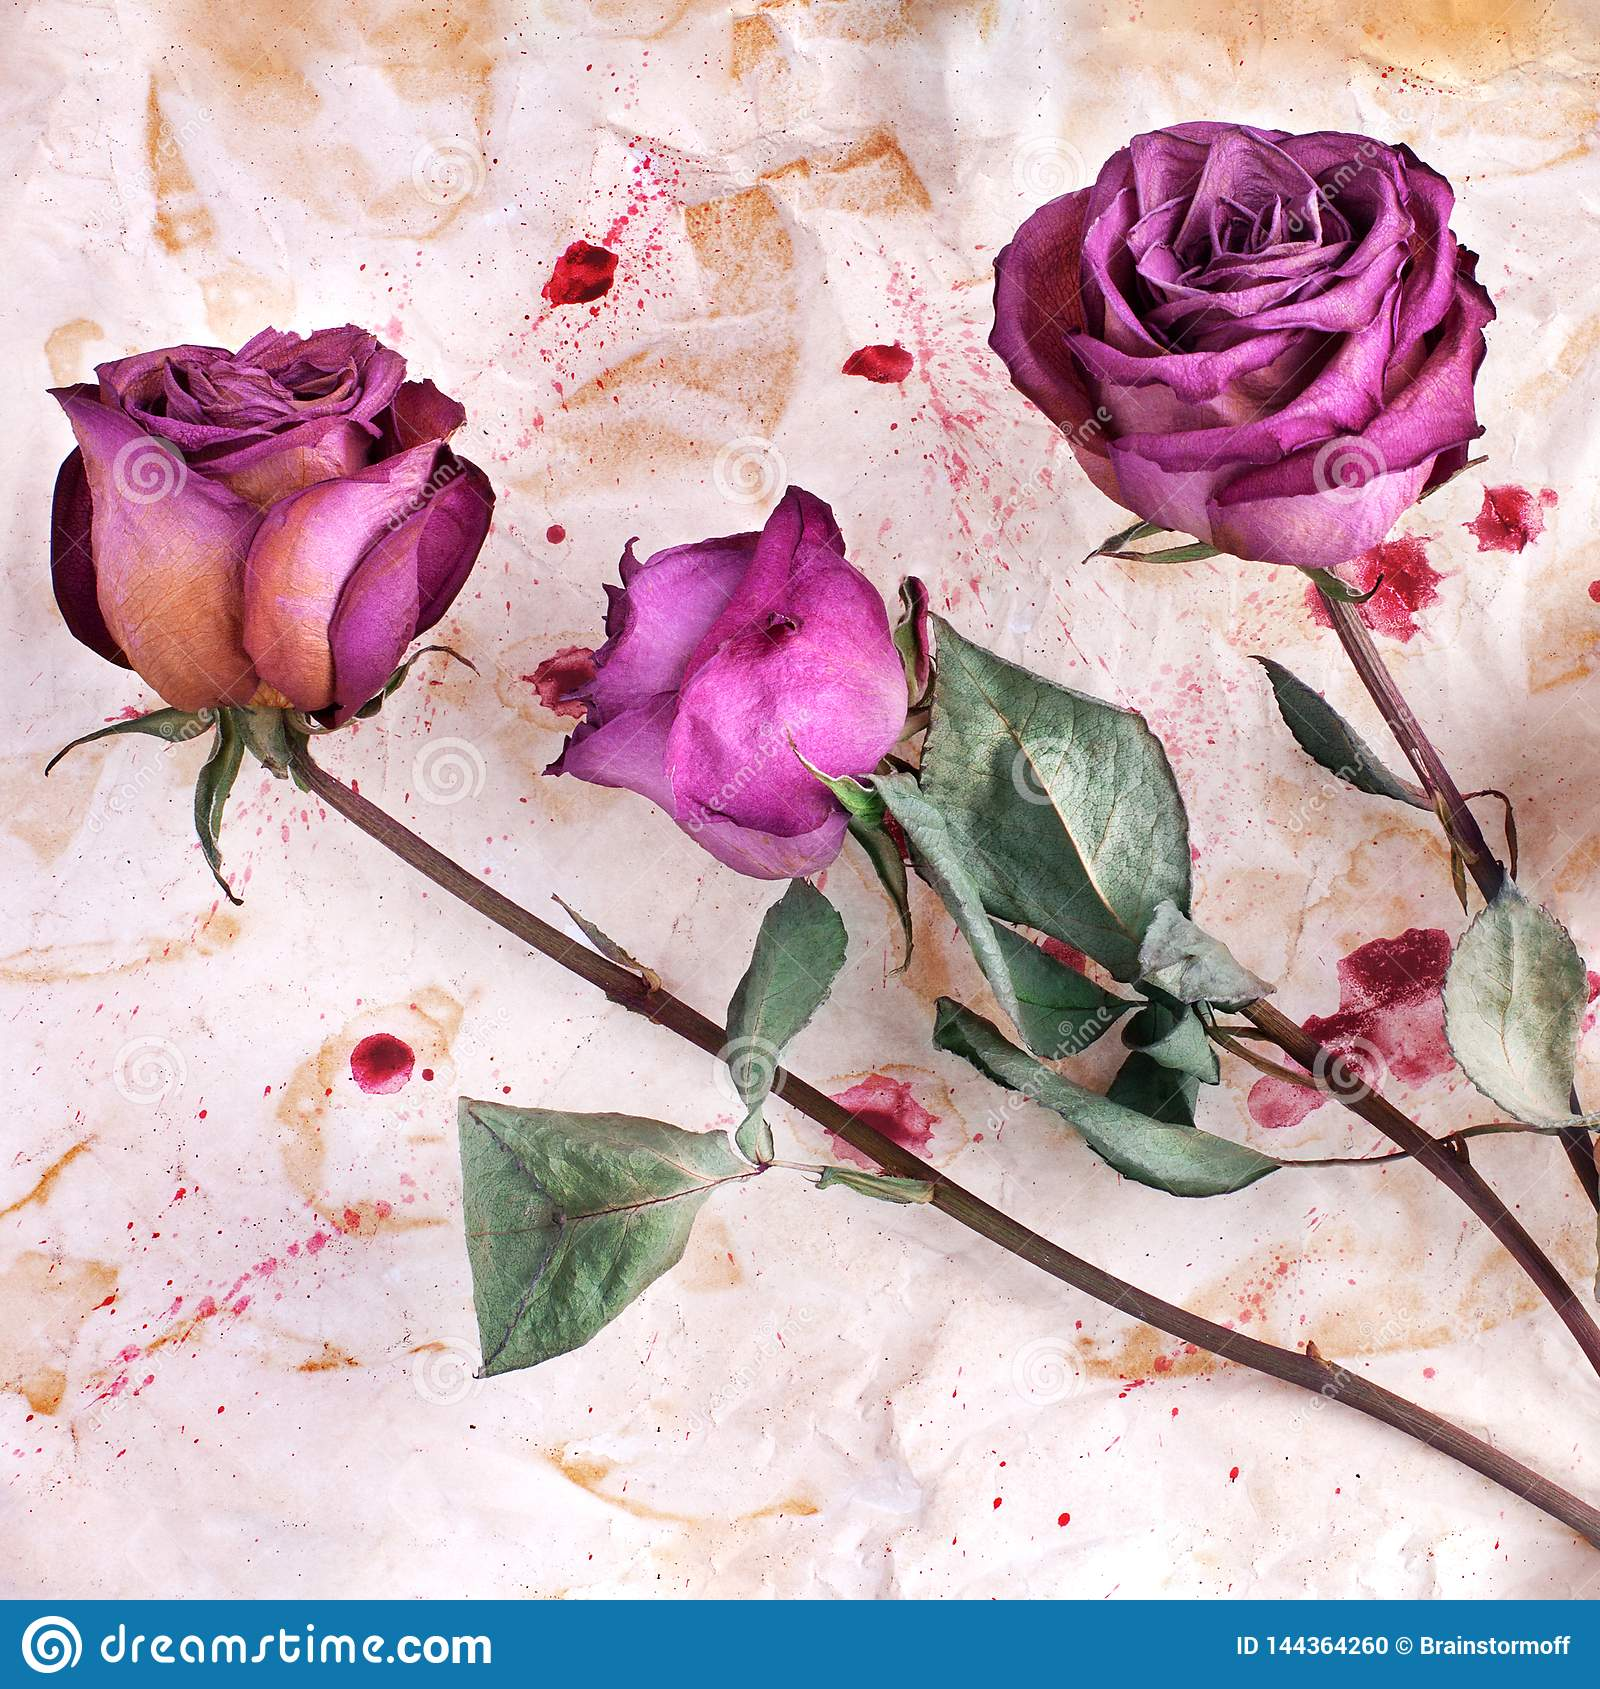 Three burgundy rose flowers on painted crumpled aged paper background close up, holiday invitation or greeting card design